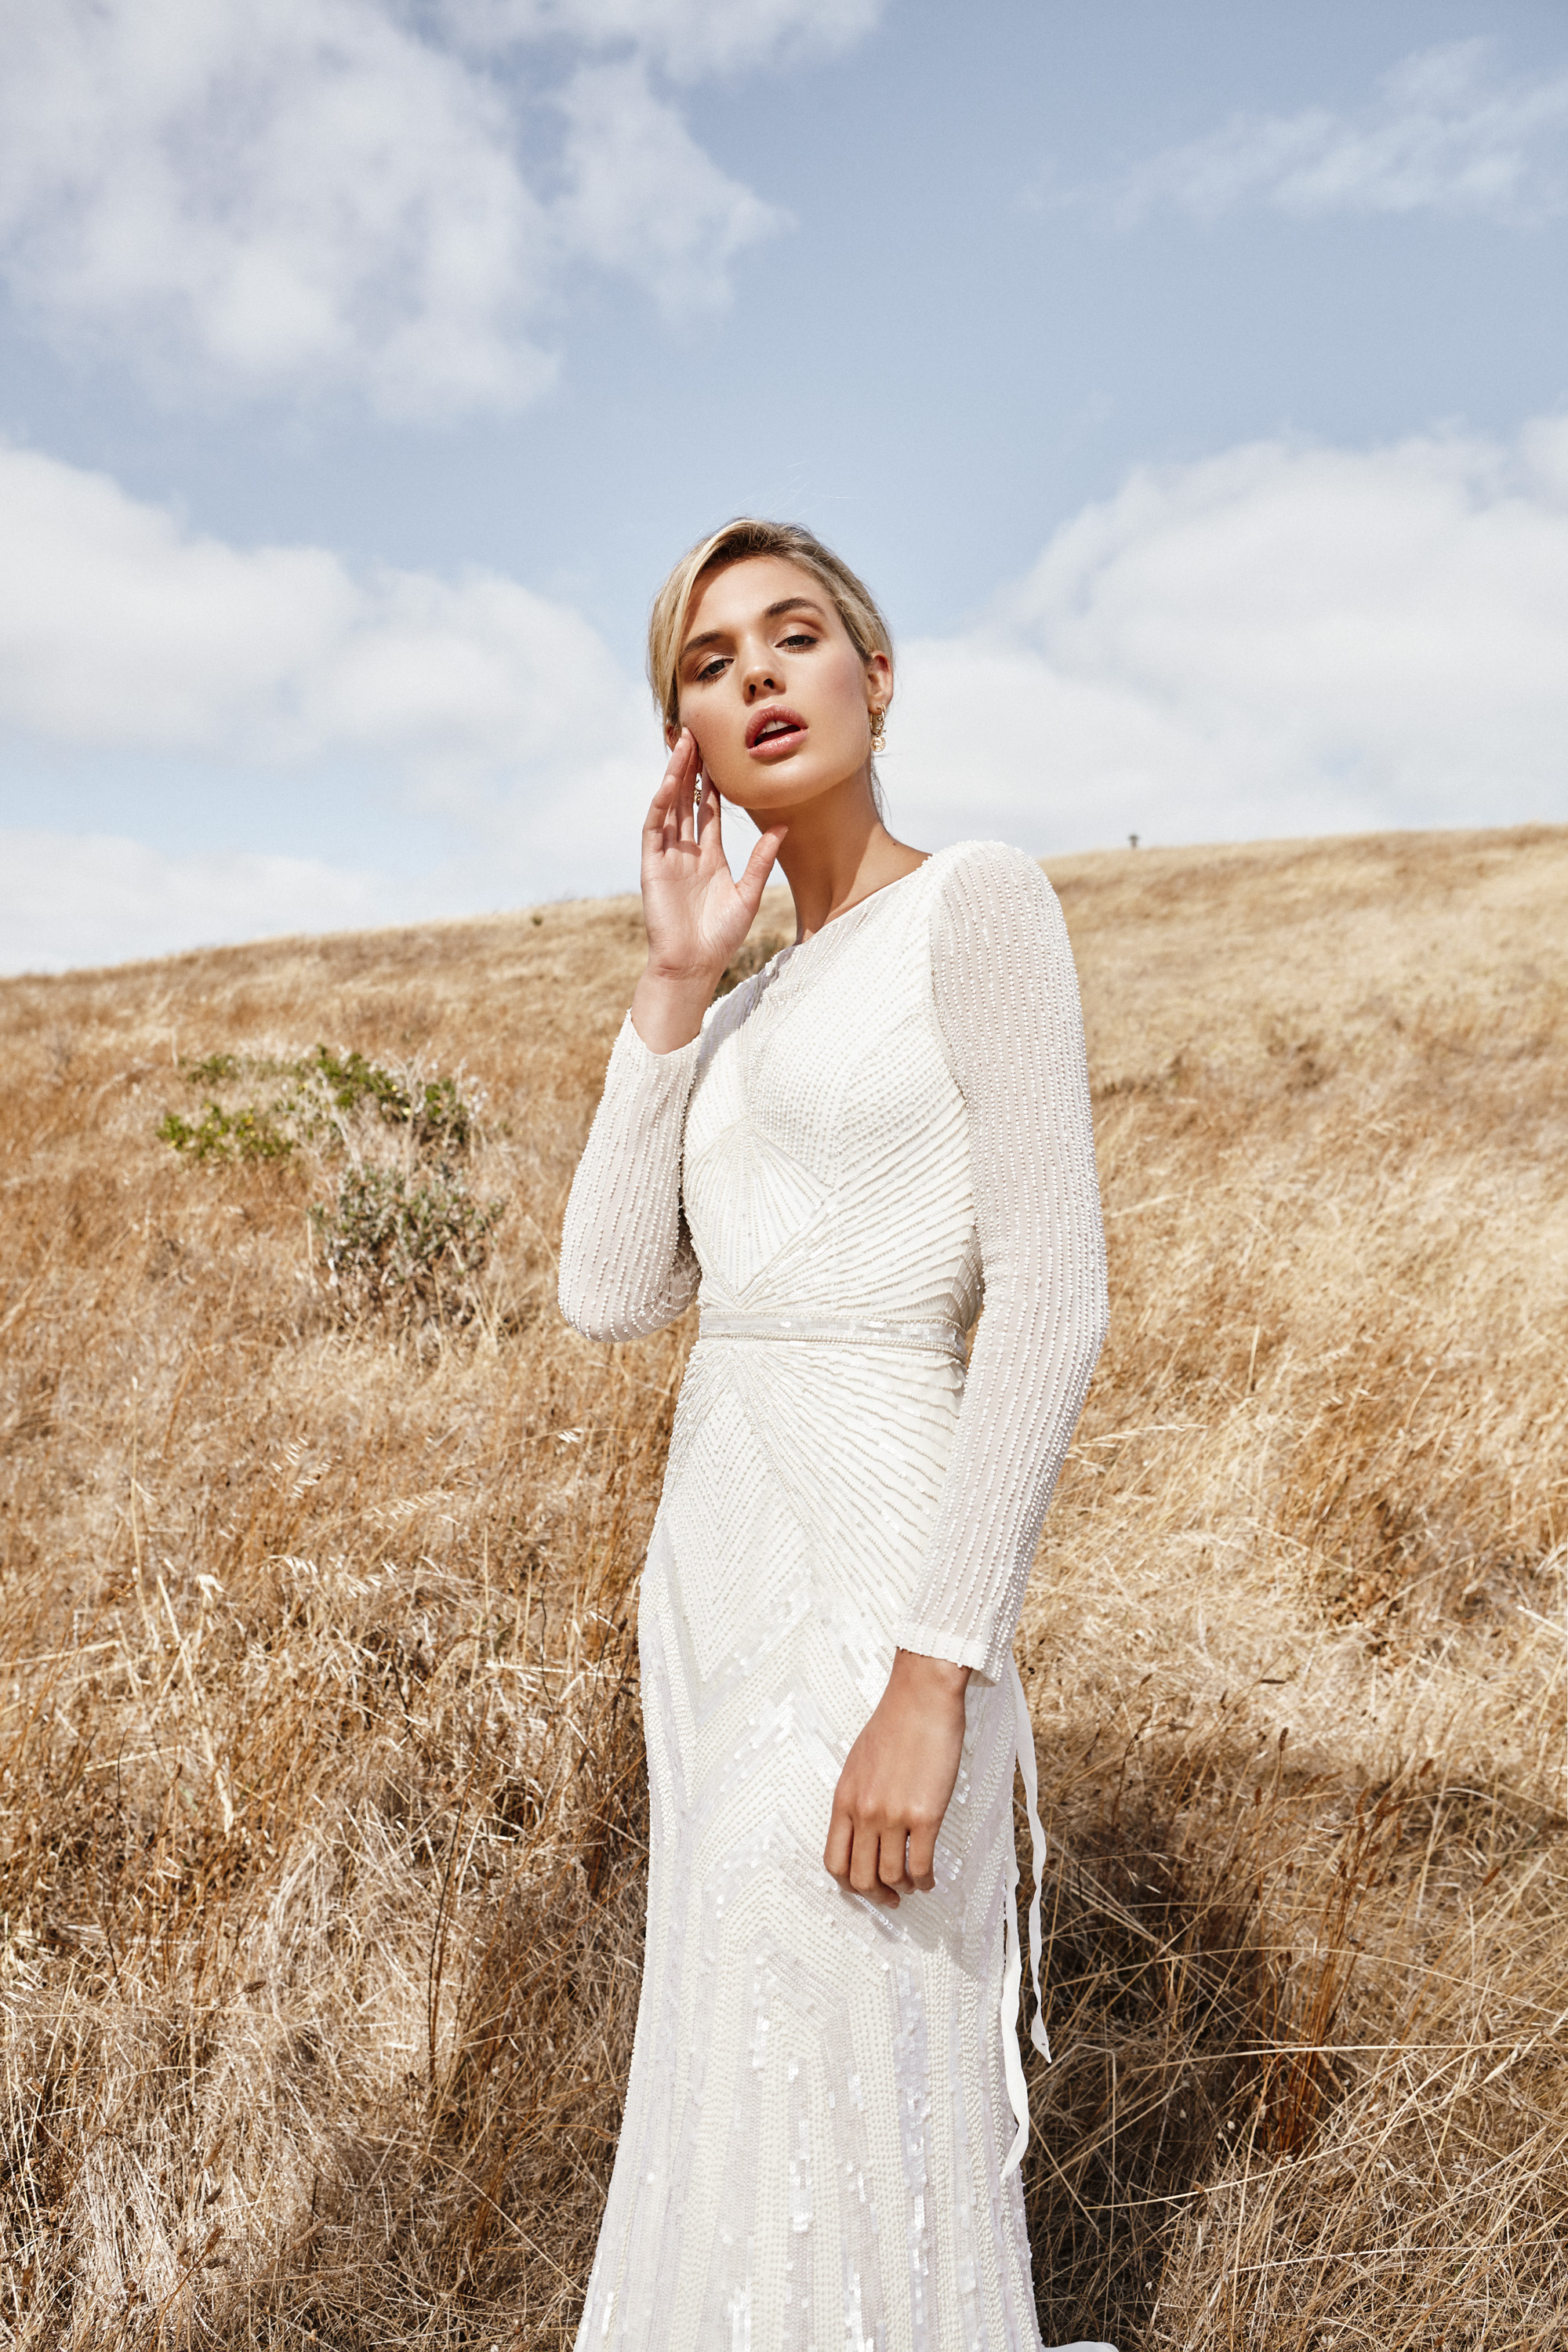 Modest Wedding Dress by KWH available at The Bridal Studio slc county